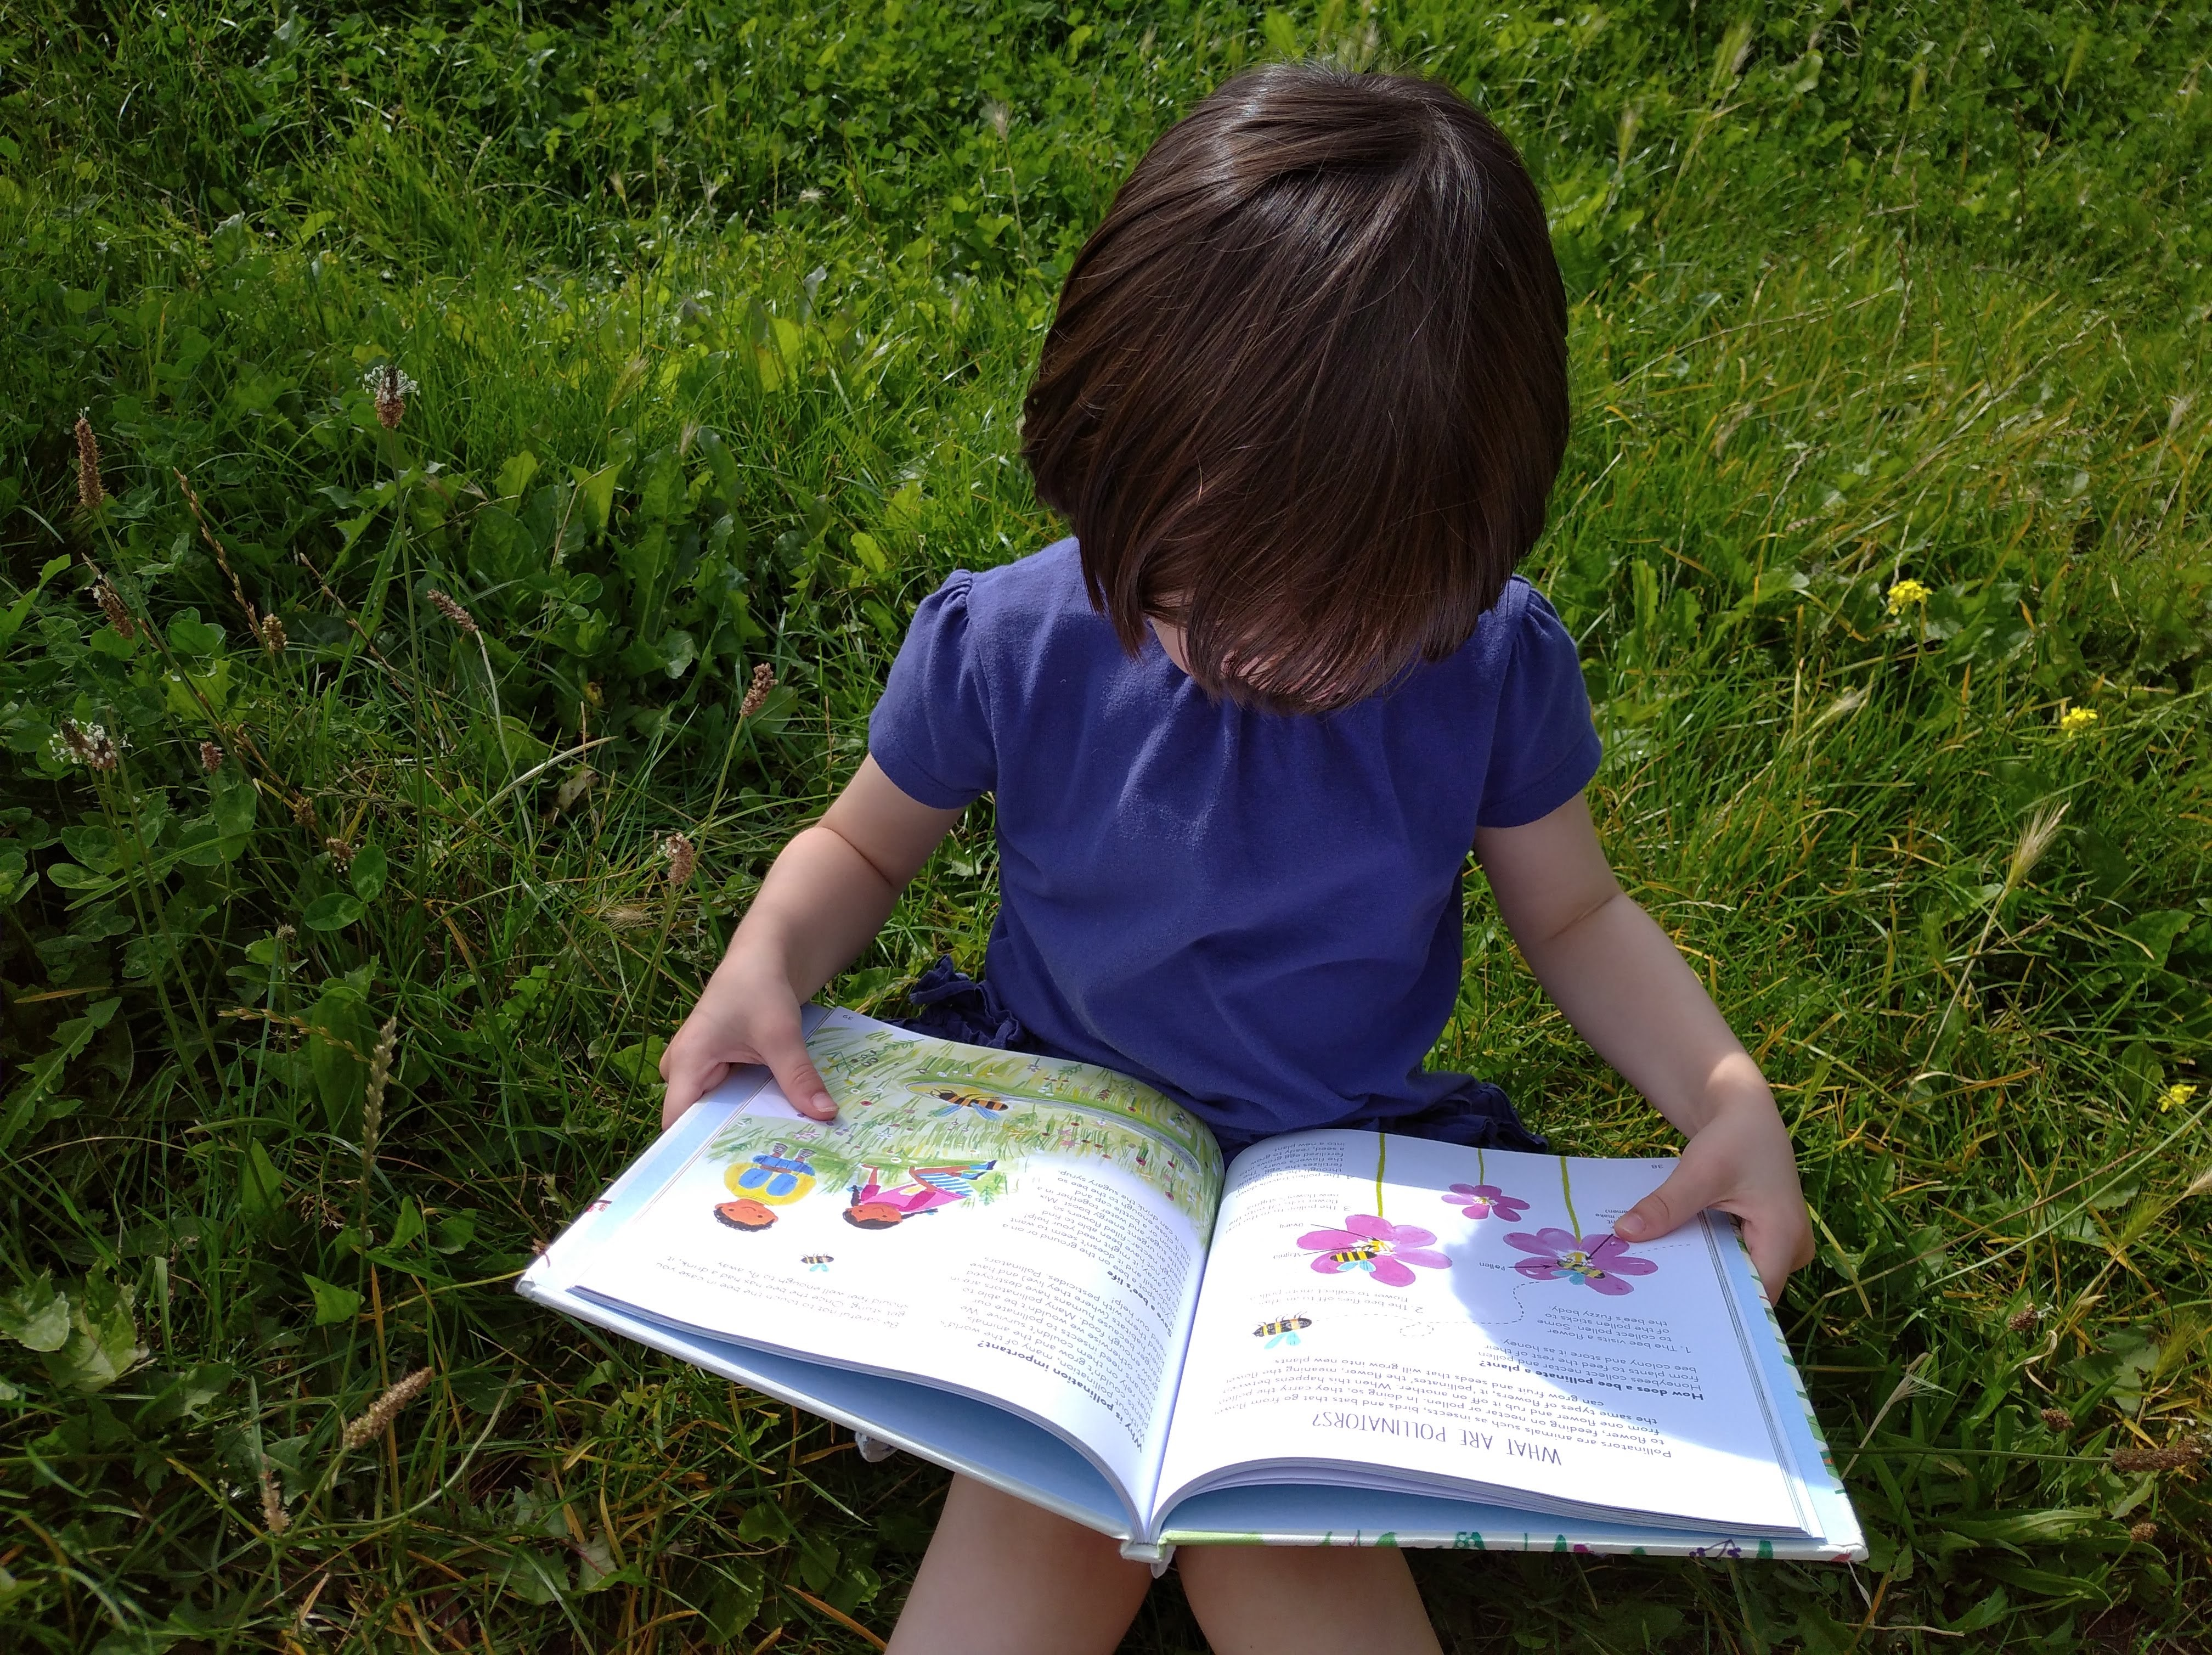 child reading nature book in park